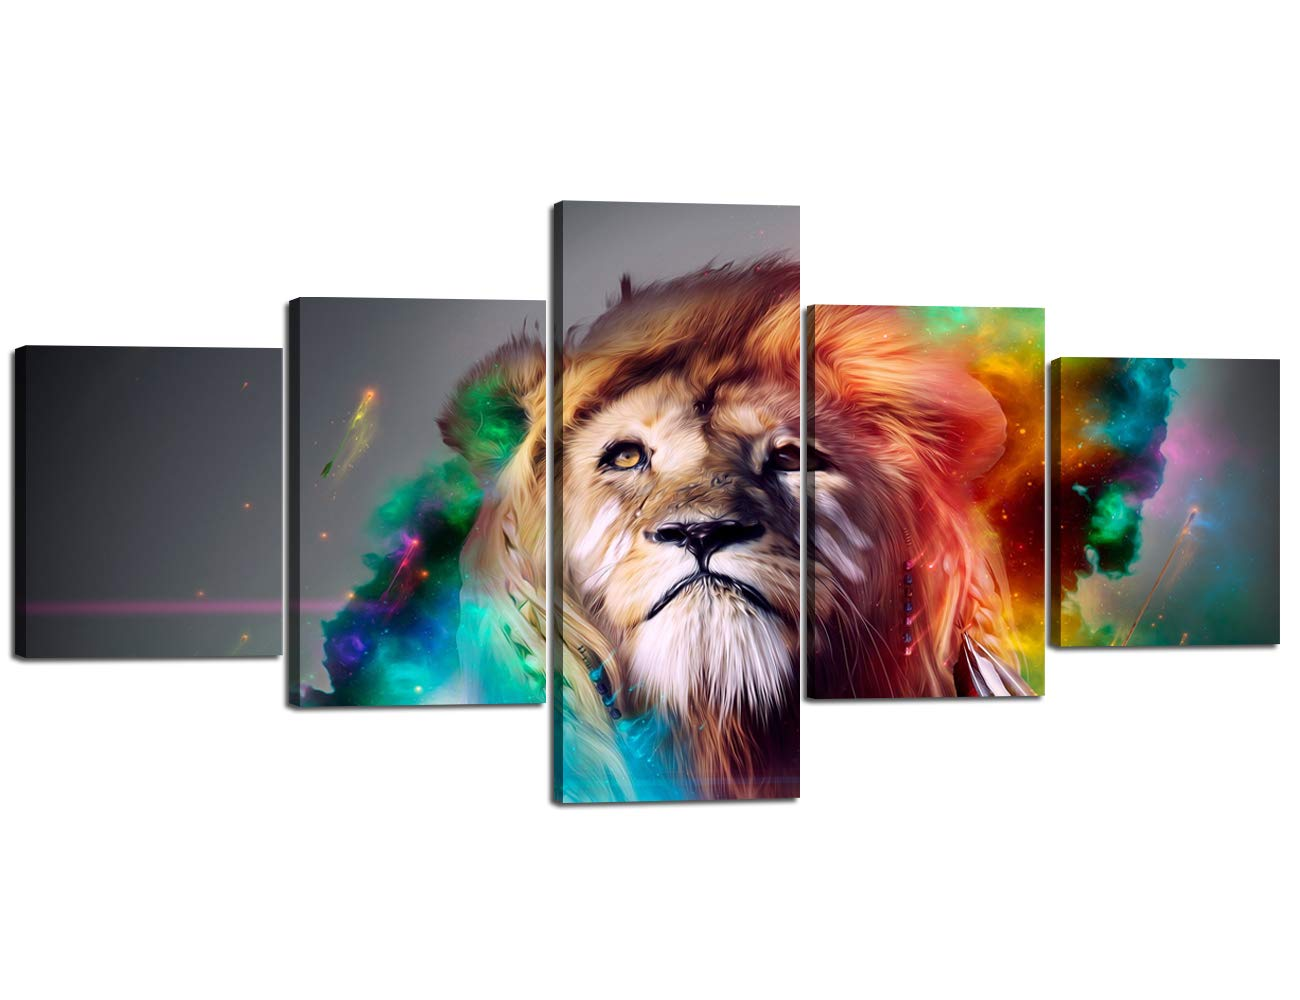 Artwork-08 50''W x 24''H Yatsen Bridge Framed Lion Pictures Wall Decor Modern 5 Panels White Black Lions Canvas Wall Art Easy to Hang Animal Posters for Living Room Bedroom Decor - 60''W x 32''H